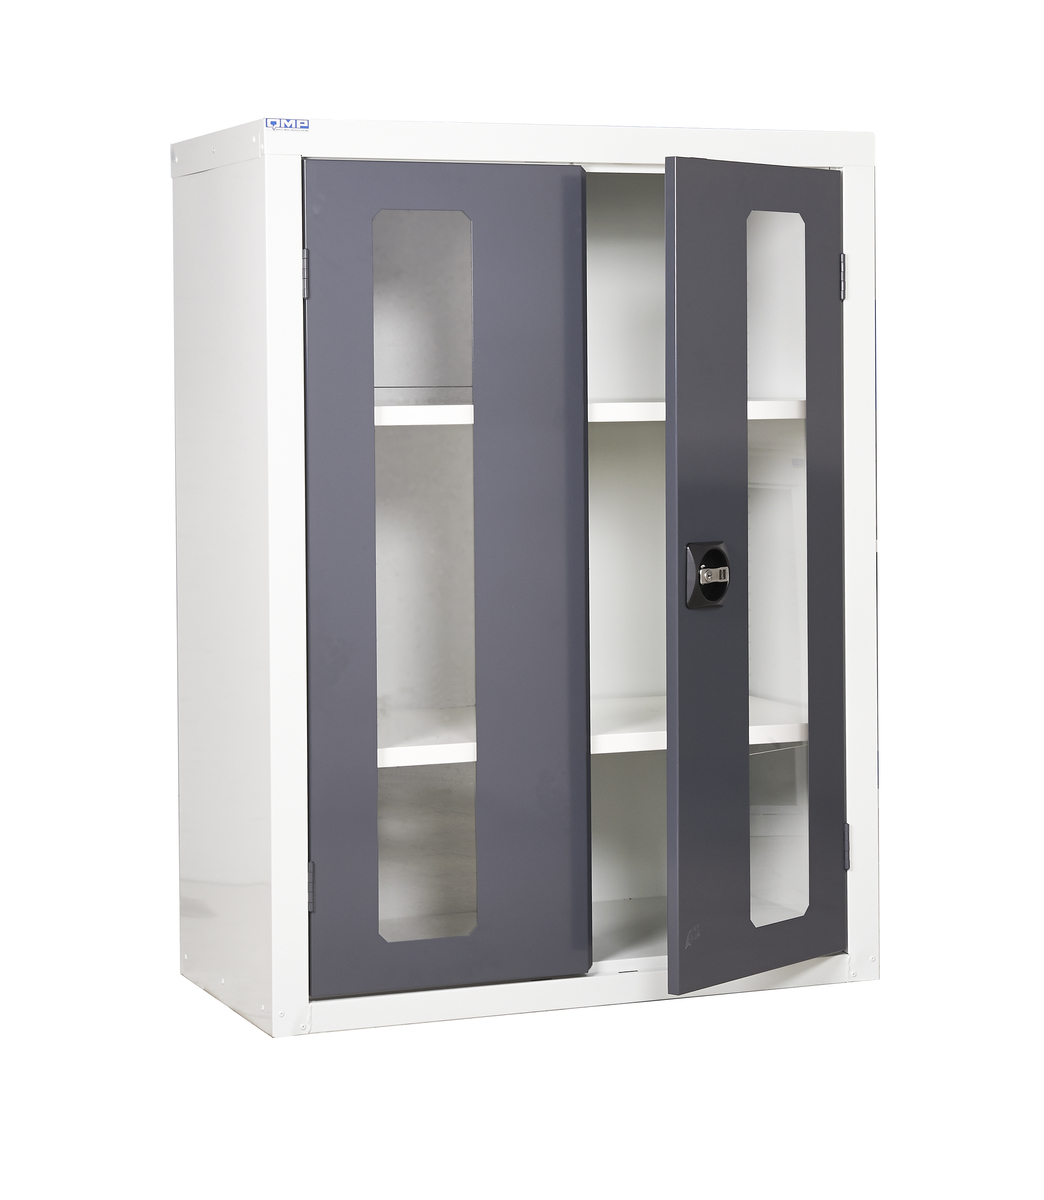 View more images  sc 1 st  Barriers Direct & Cupboards with Vision Door - High quality perspex door allows you to ...